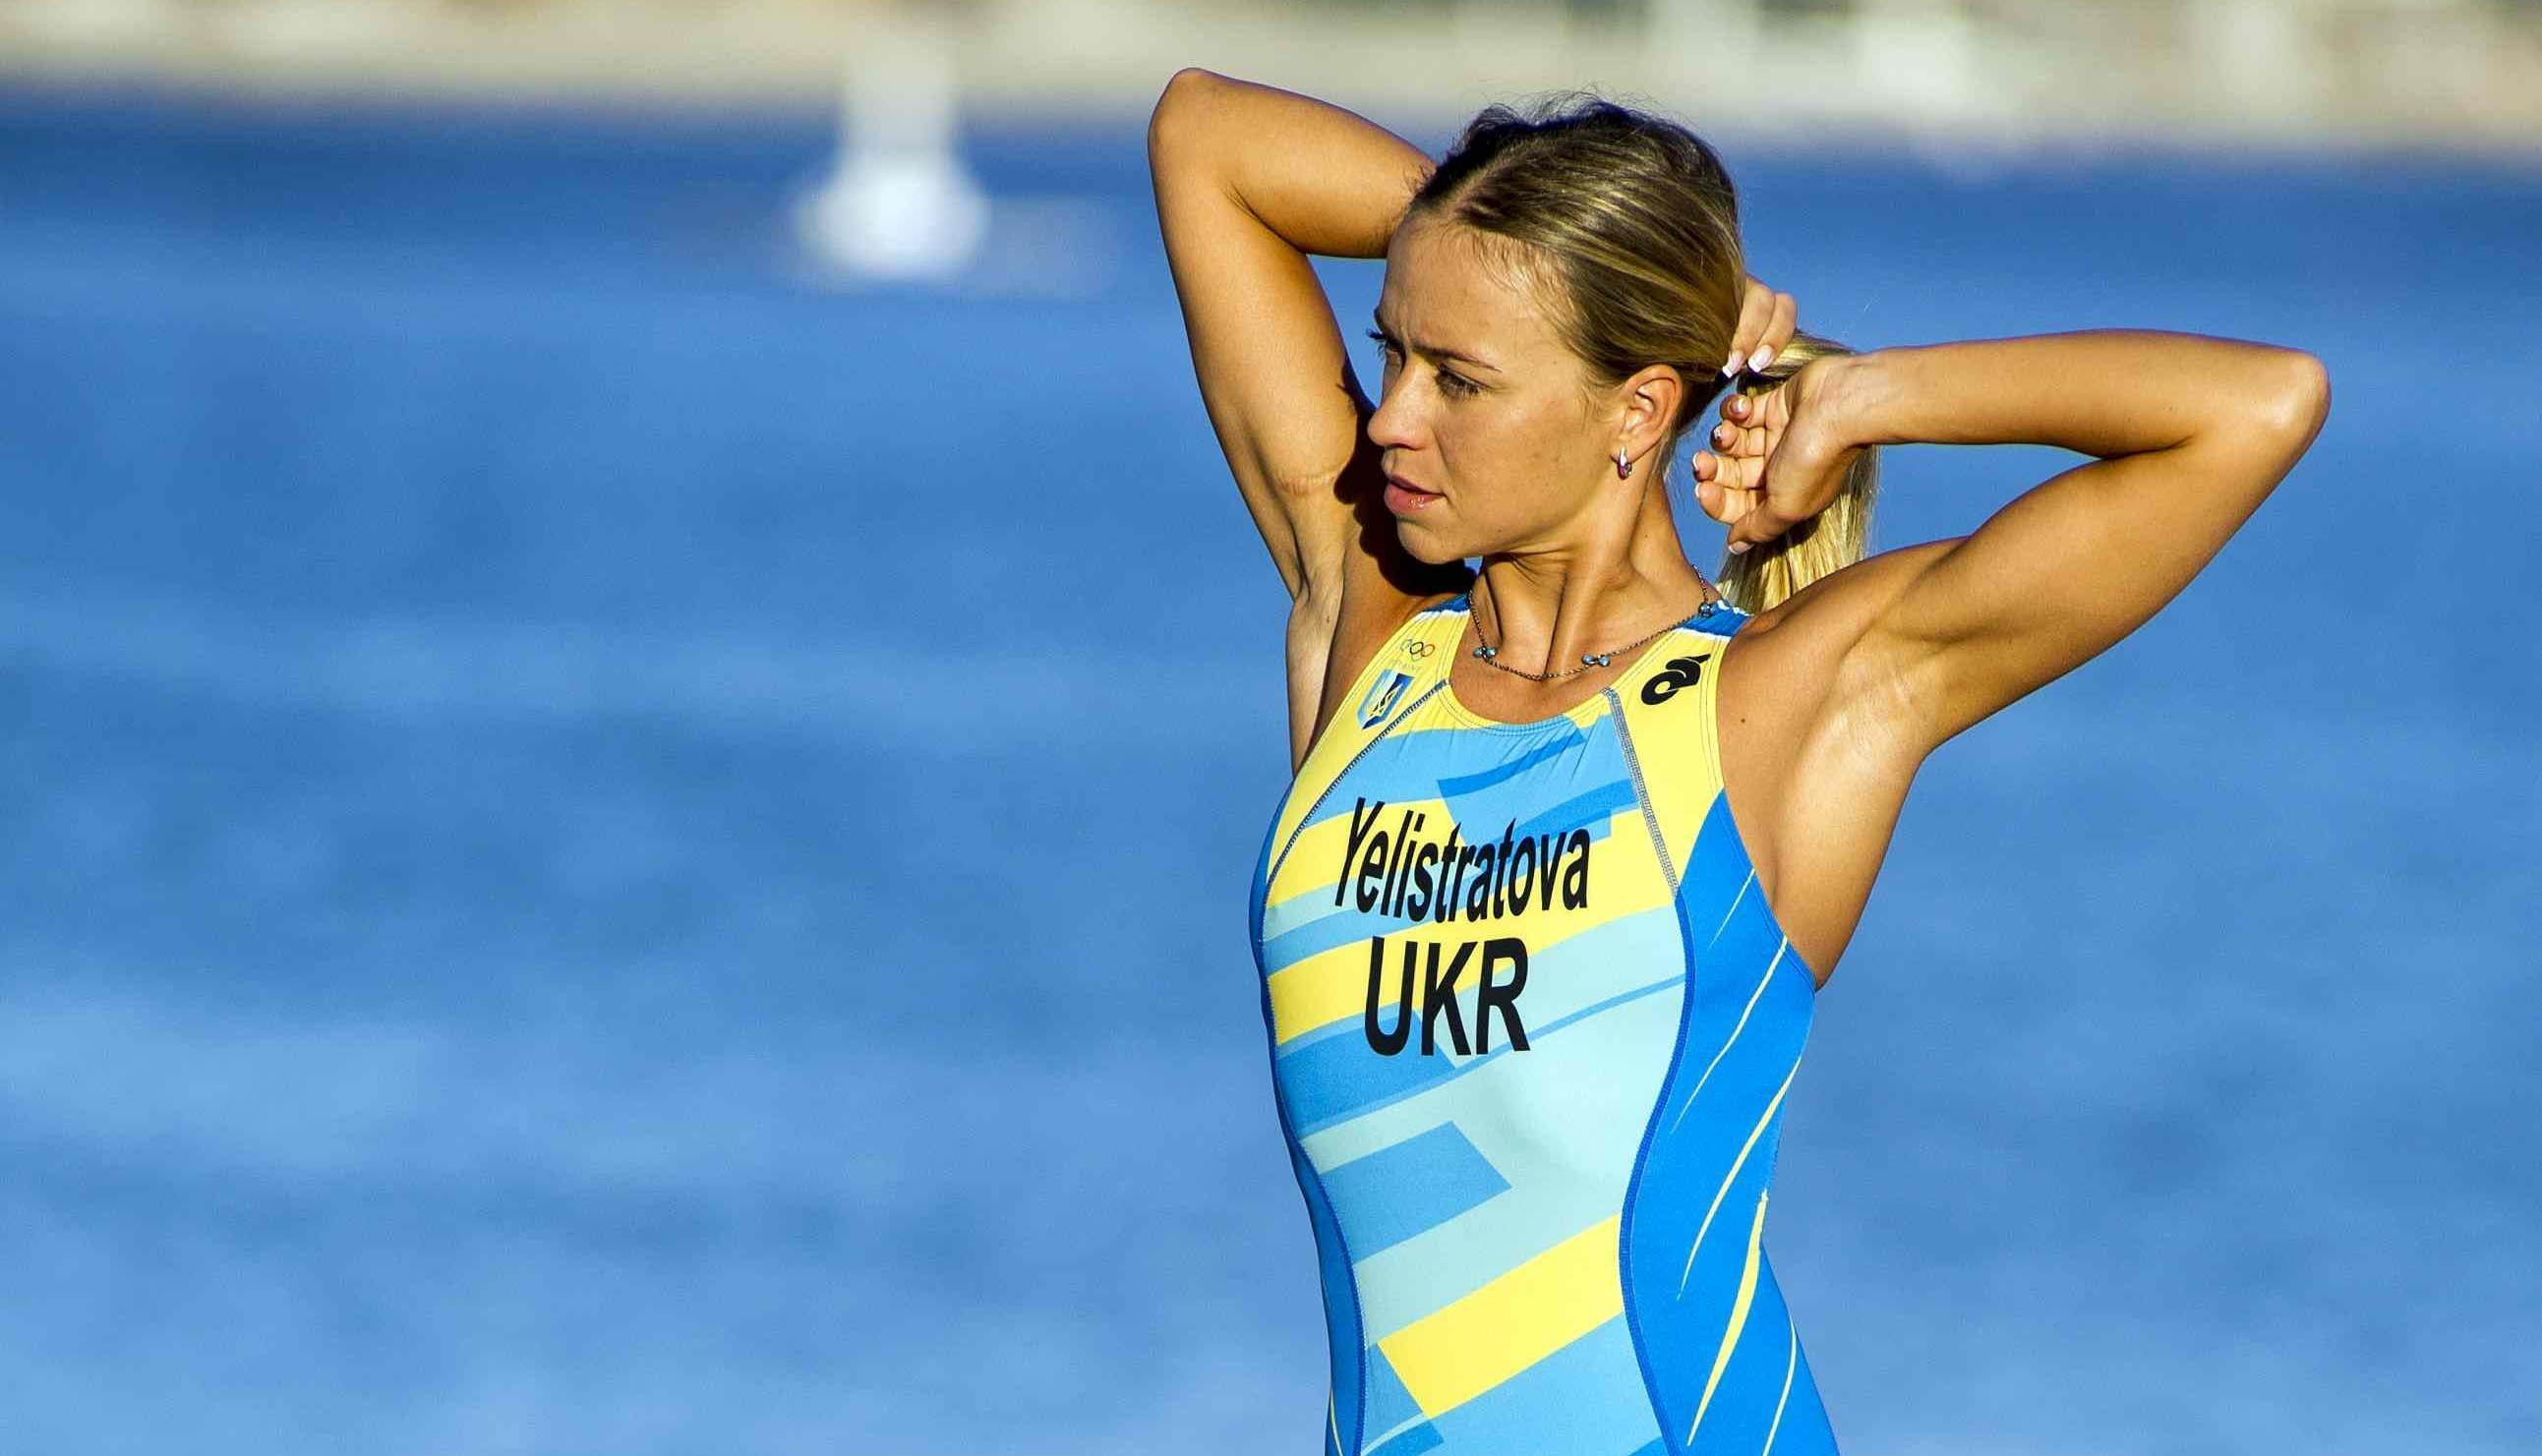 Interview Yuliya Yelistratova – ITU Triathlon